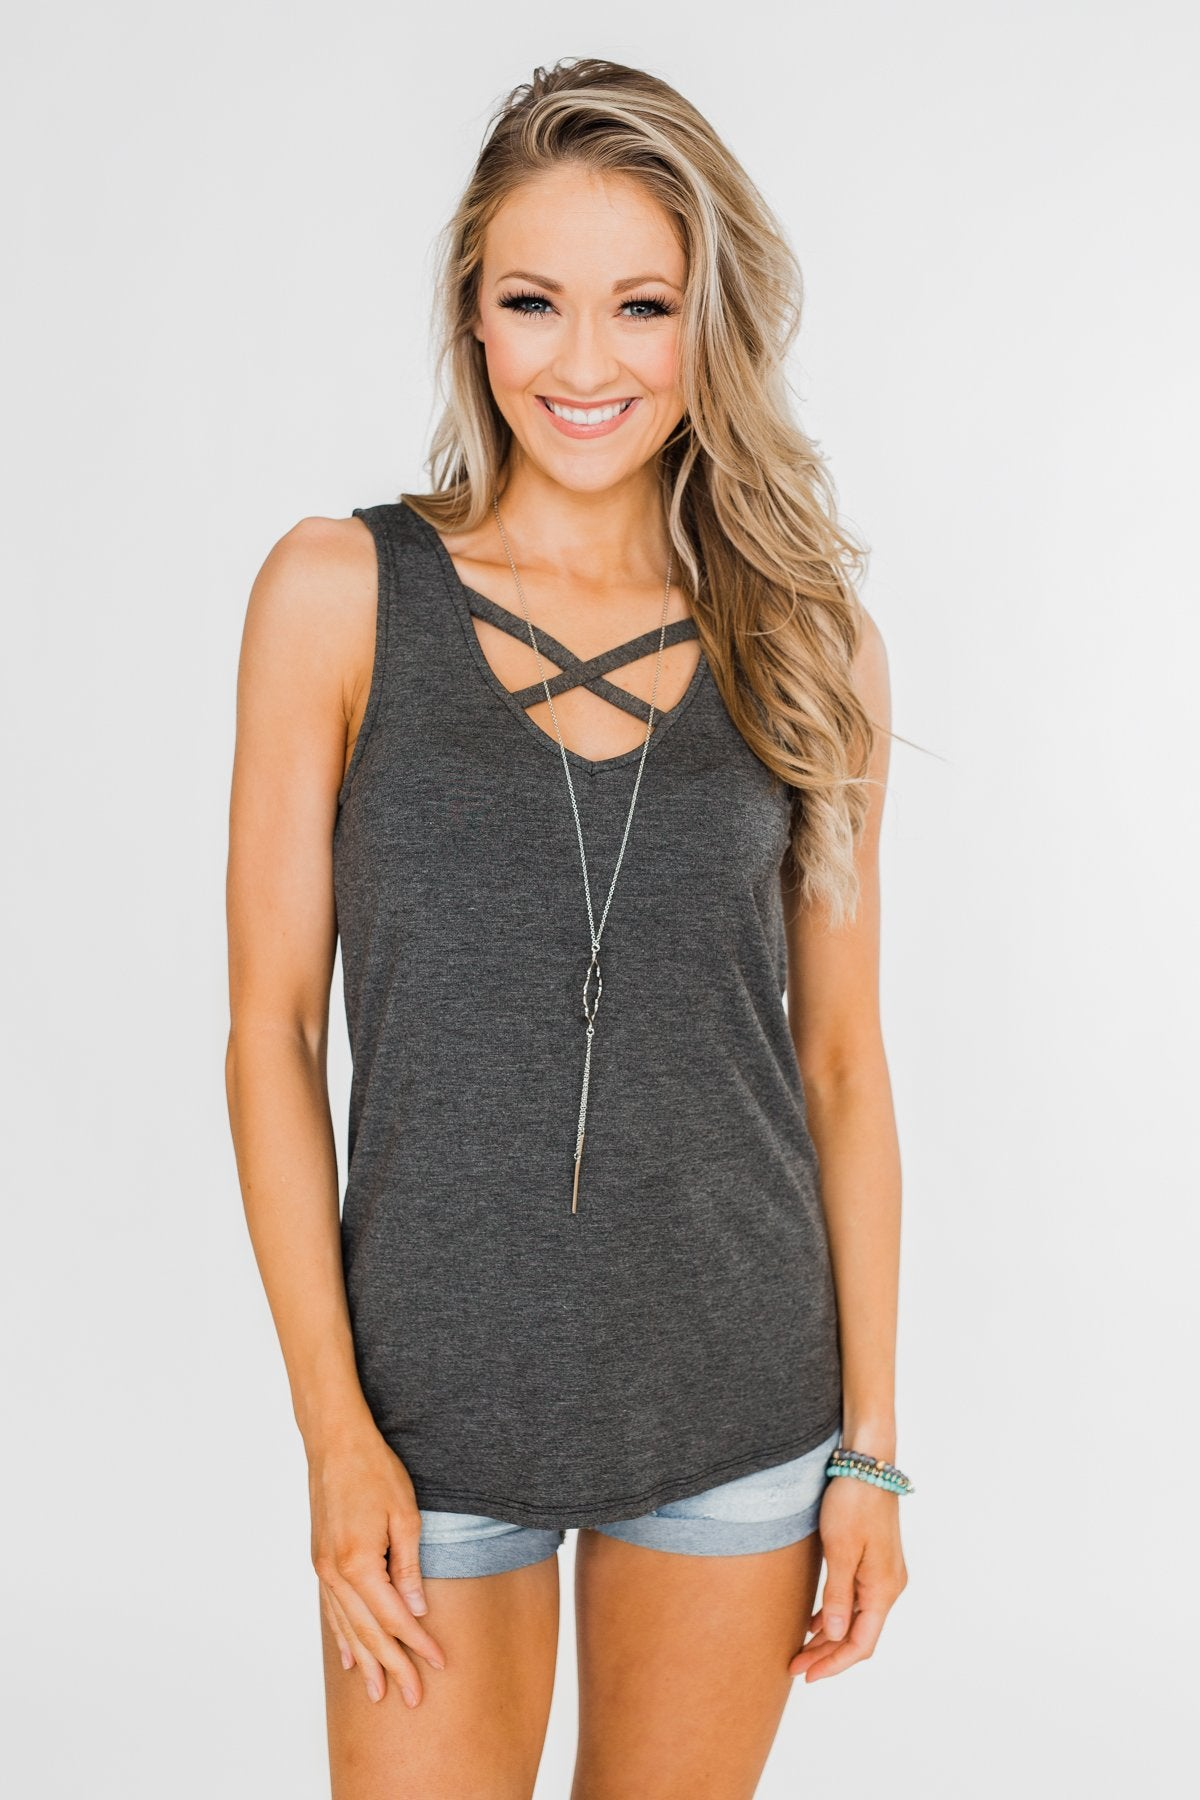 Places to Go Criss Cross Tank Top- Charcoal